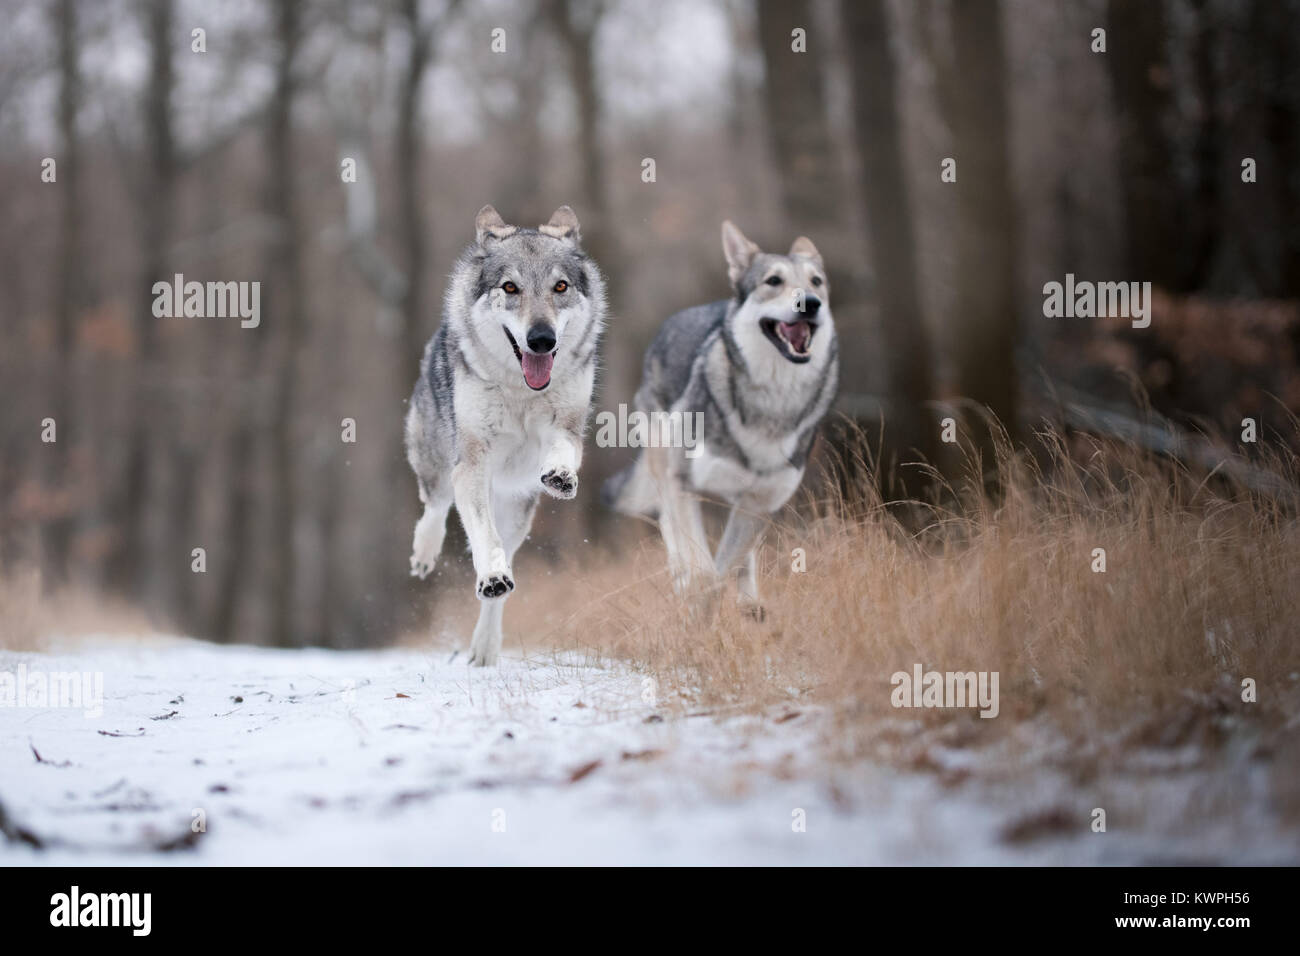 wolves in forrest in winter time on snow - Stock Image